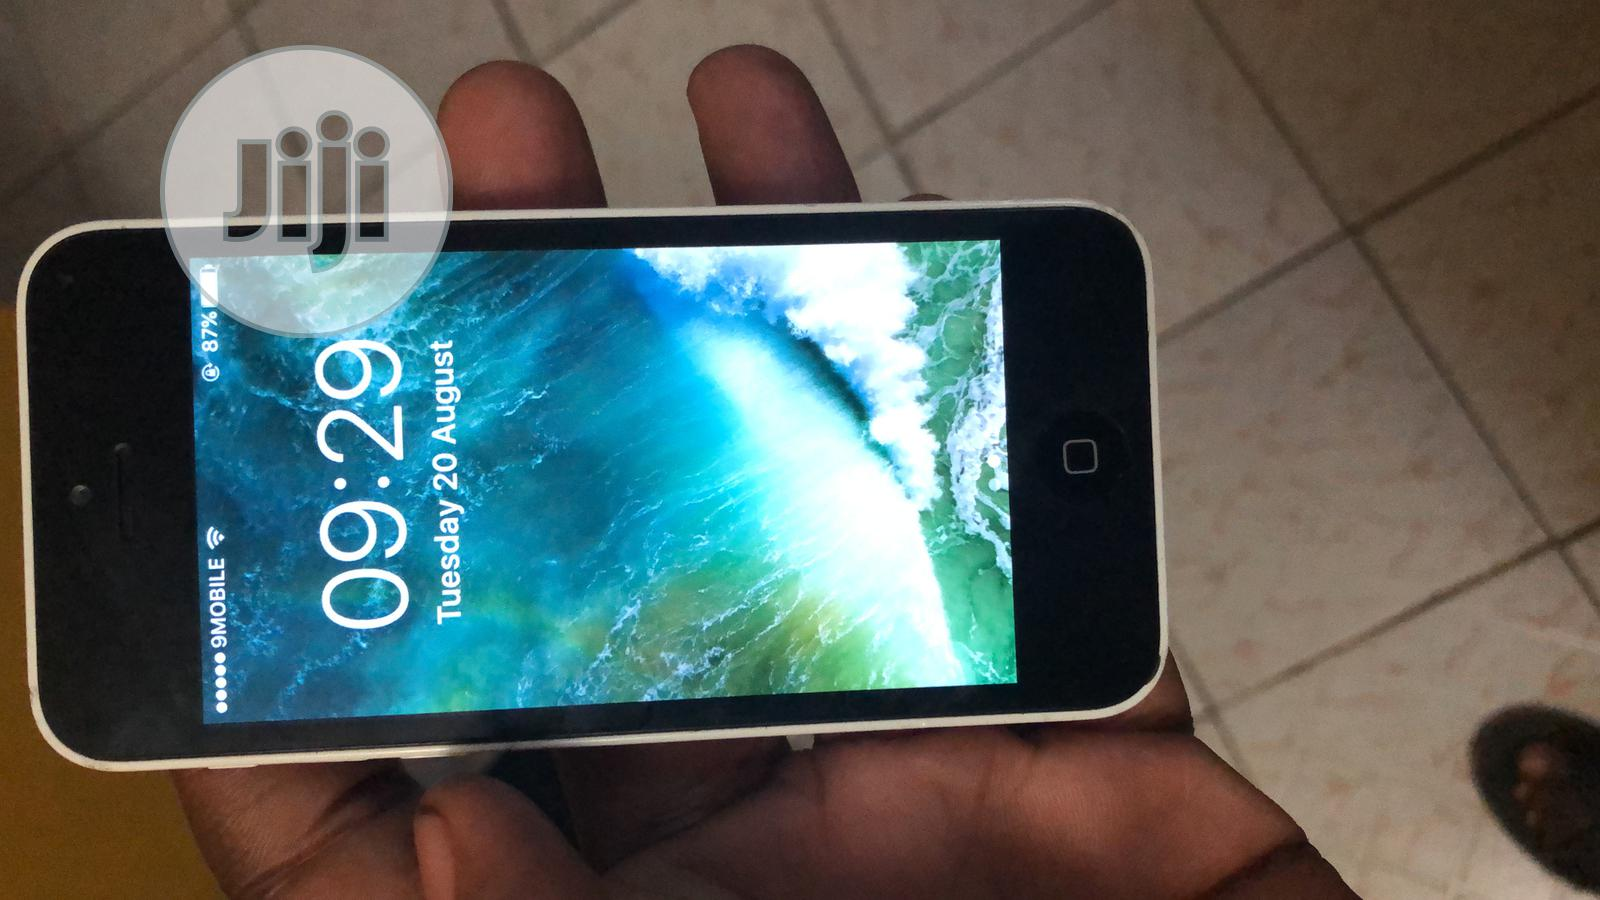 Apple iPhone 5c 8 GB White | Mobile Phones for sale in Kubwa, Abuja (FCT) State, Nigeria